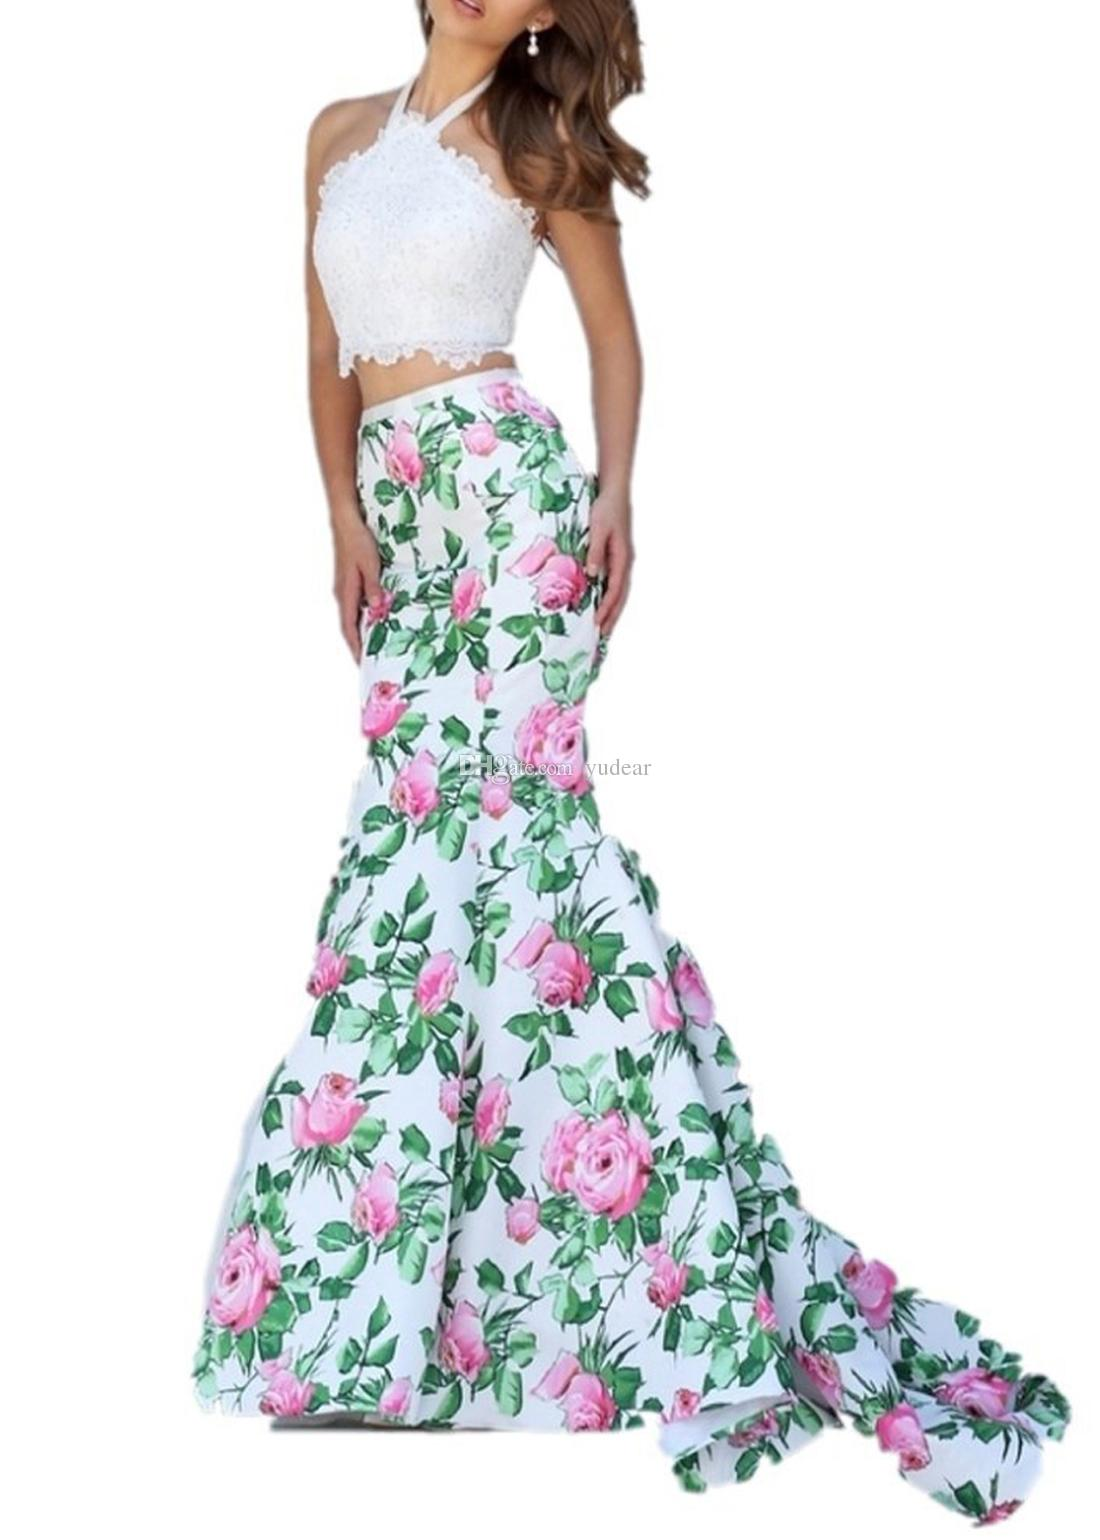 2019 Sexy Halter Neck Two Pieces Women Prom Dresses Sleeveless Lace Appliques Mermaid Evening Gown Long Formal Flowers Print Skirt for Party